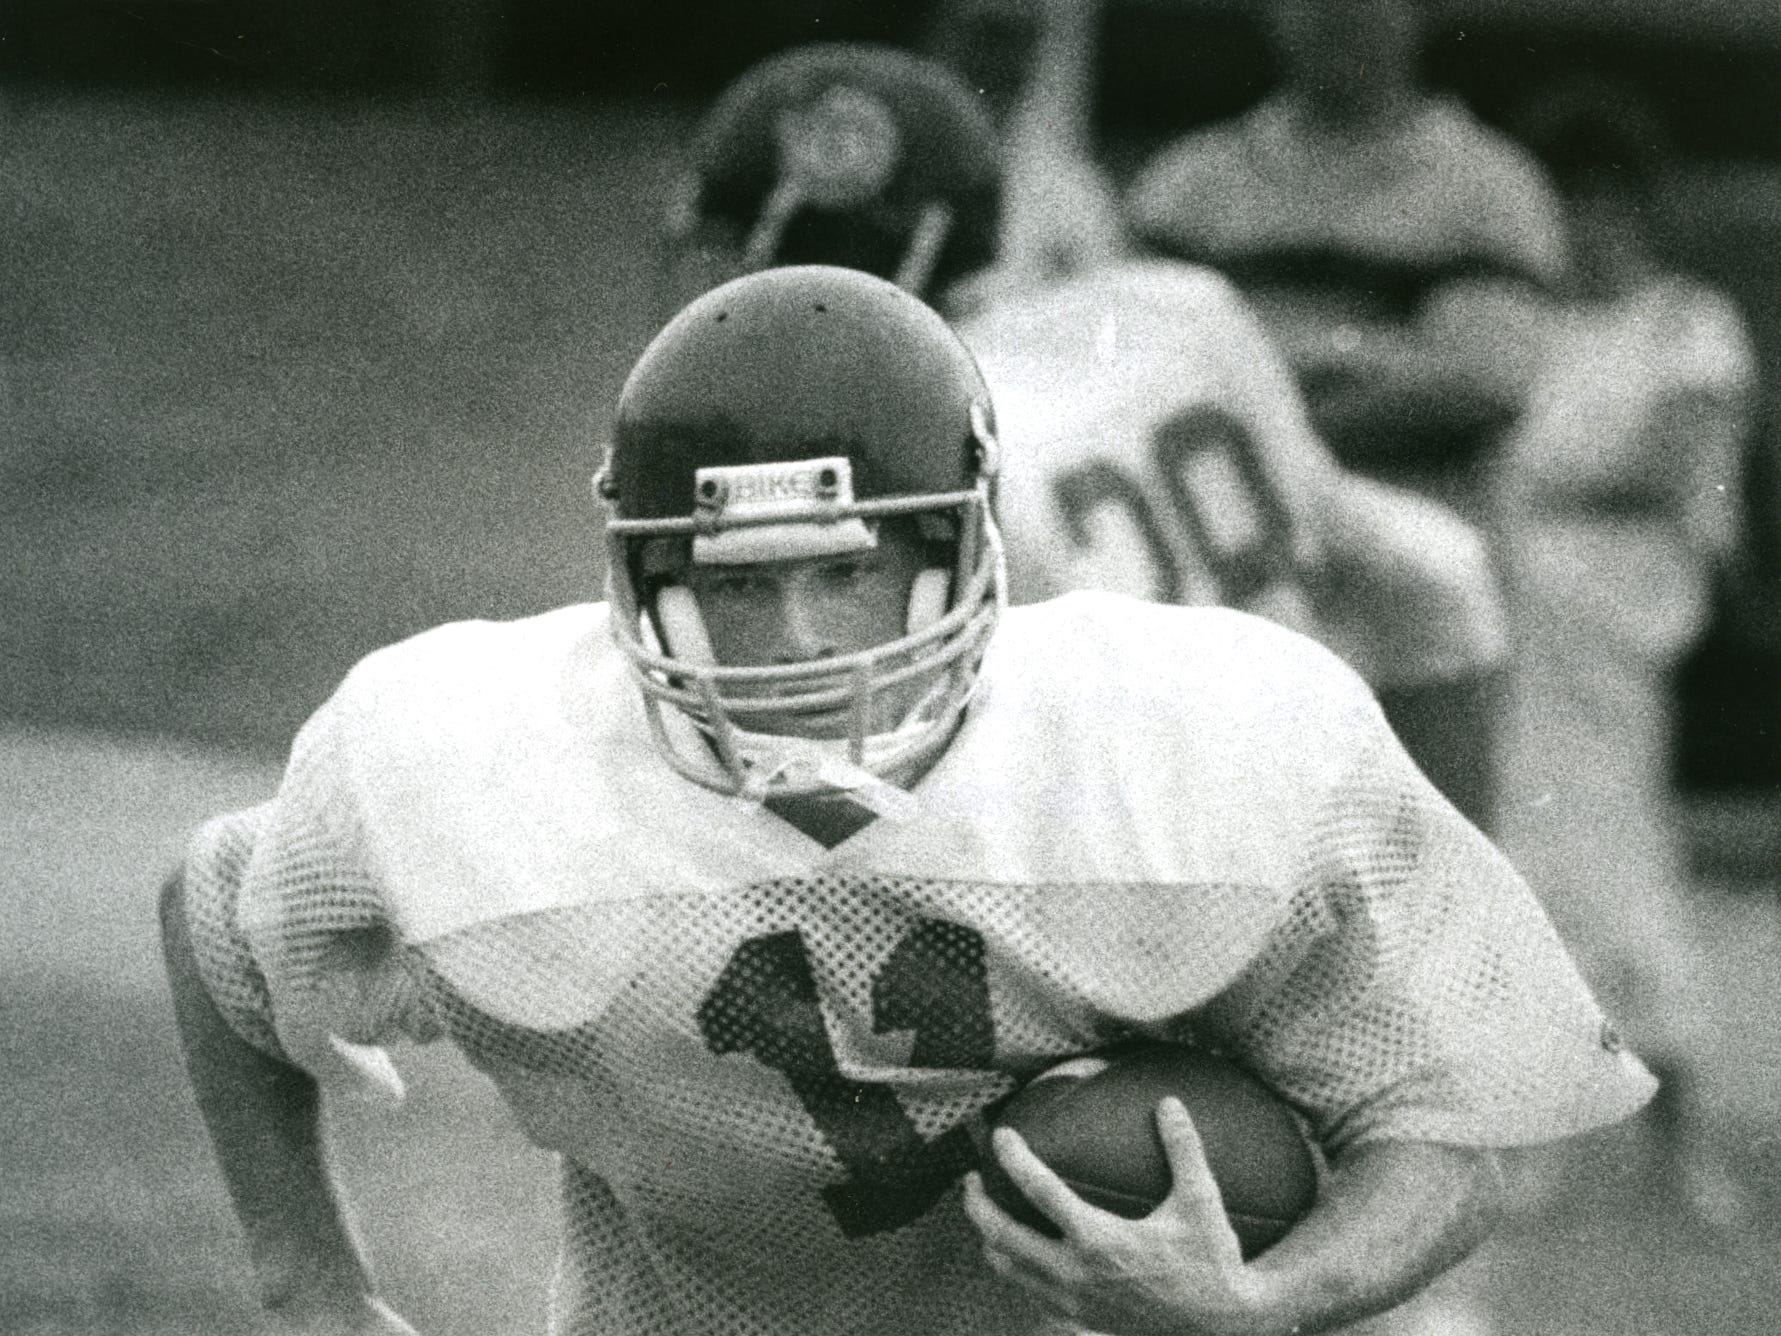 Jeff Brohm had an All-State career as Trinity's quarteback.